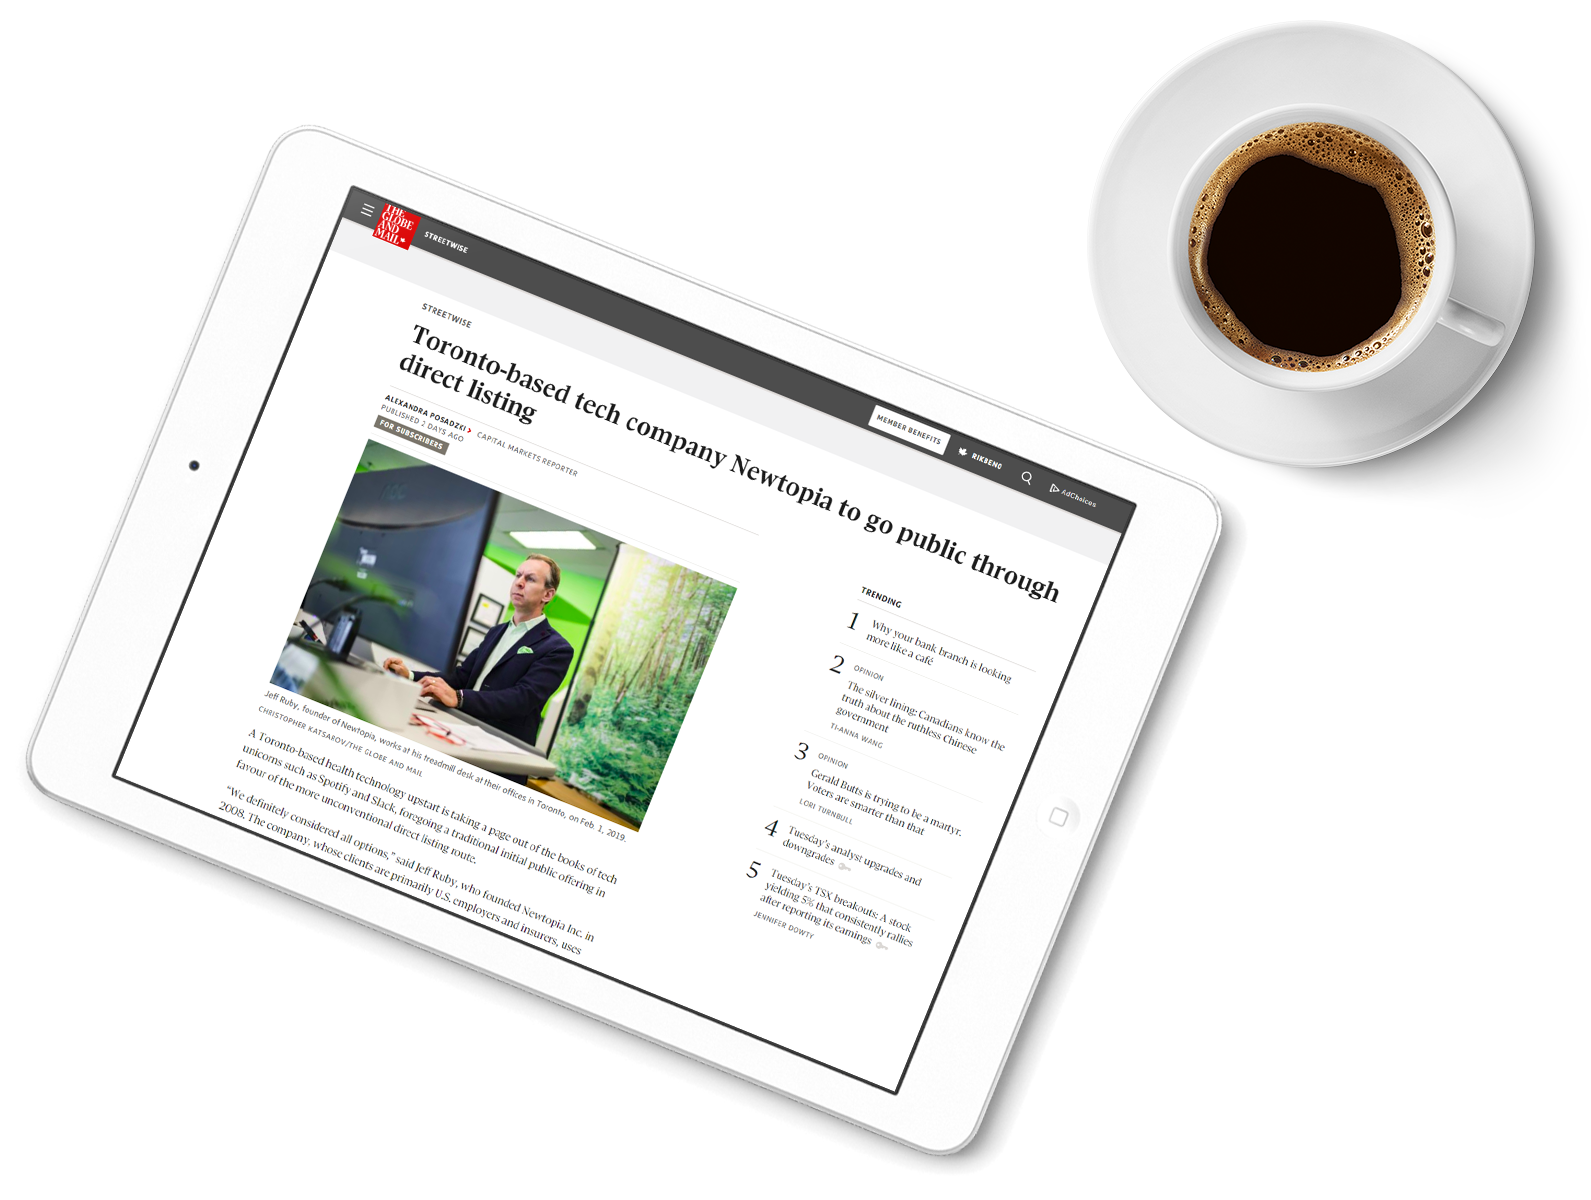 An iPad showing a news article featuring Newtopia next to a cup of coffee